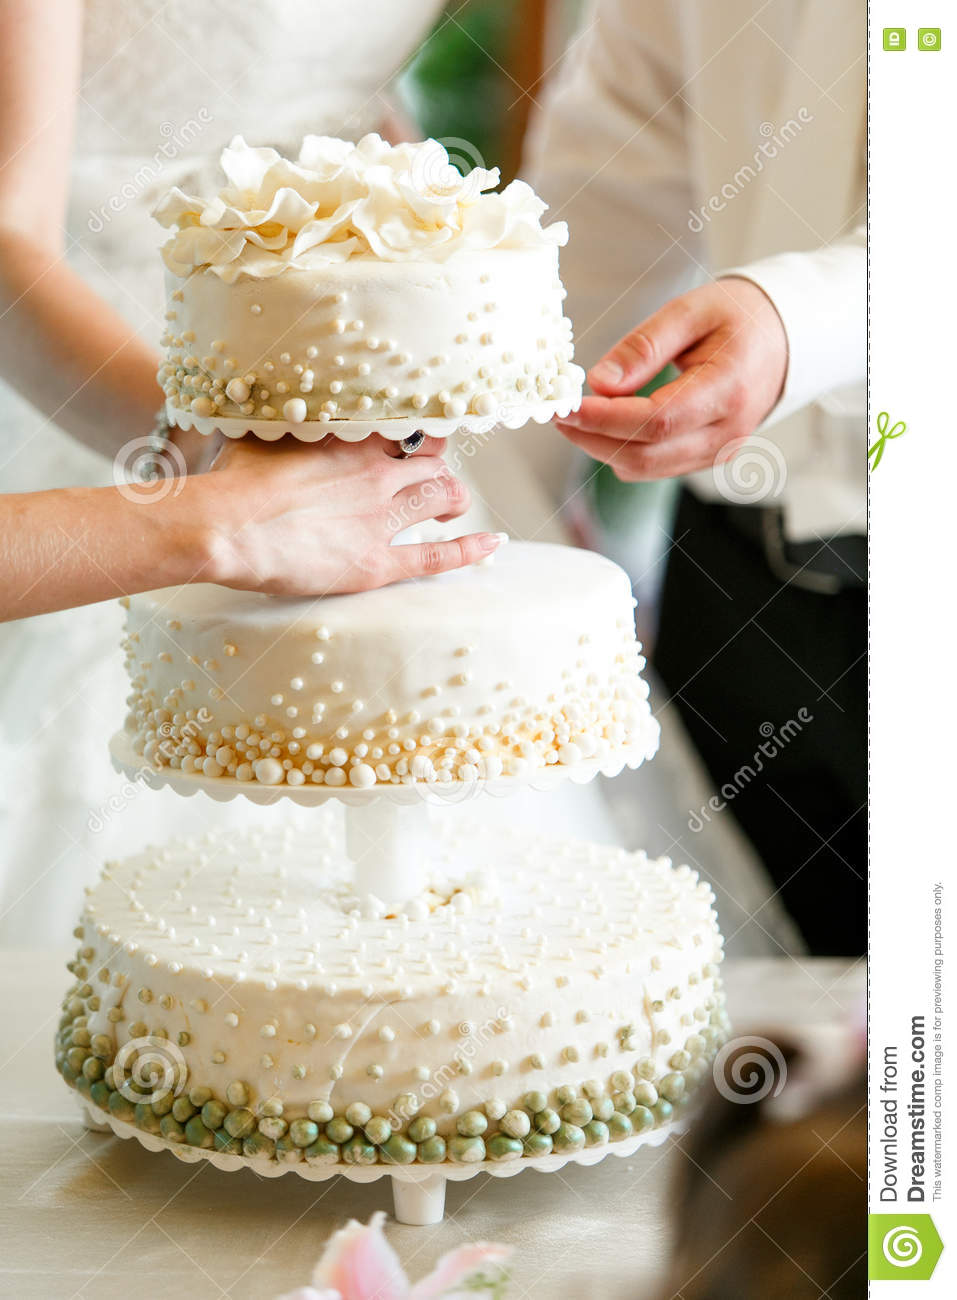 A Beautiful Wedding Cake Decorated With Green And White Pearls Stock ...